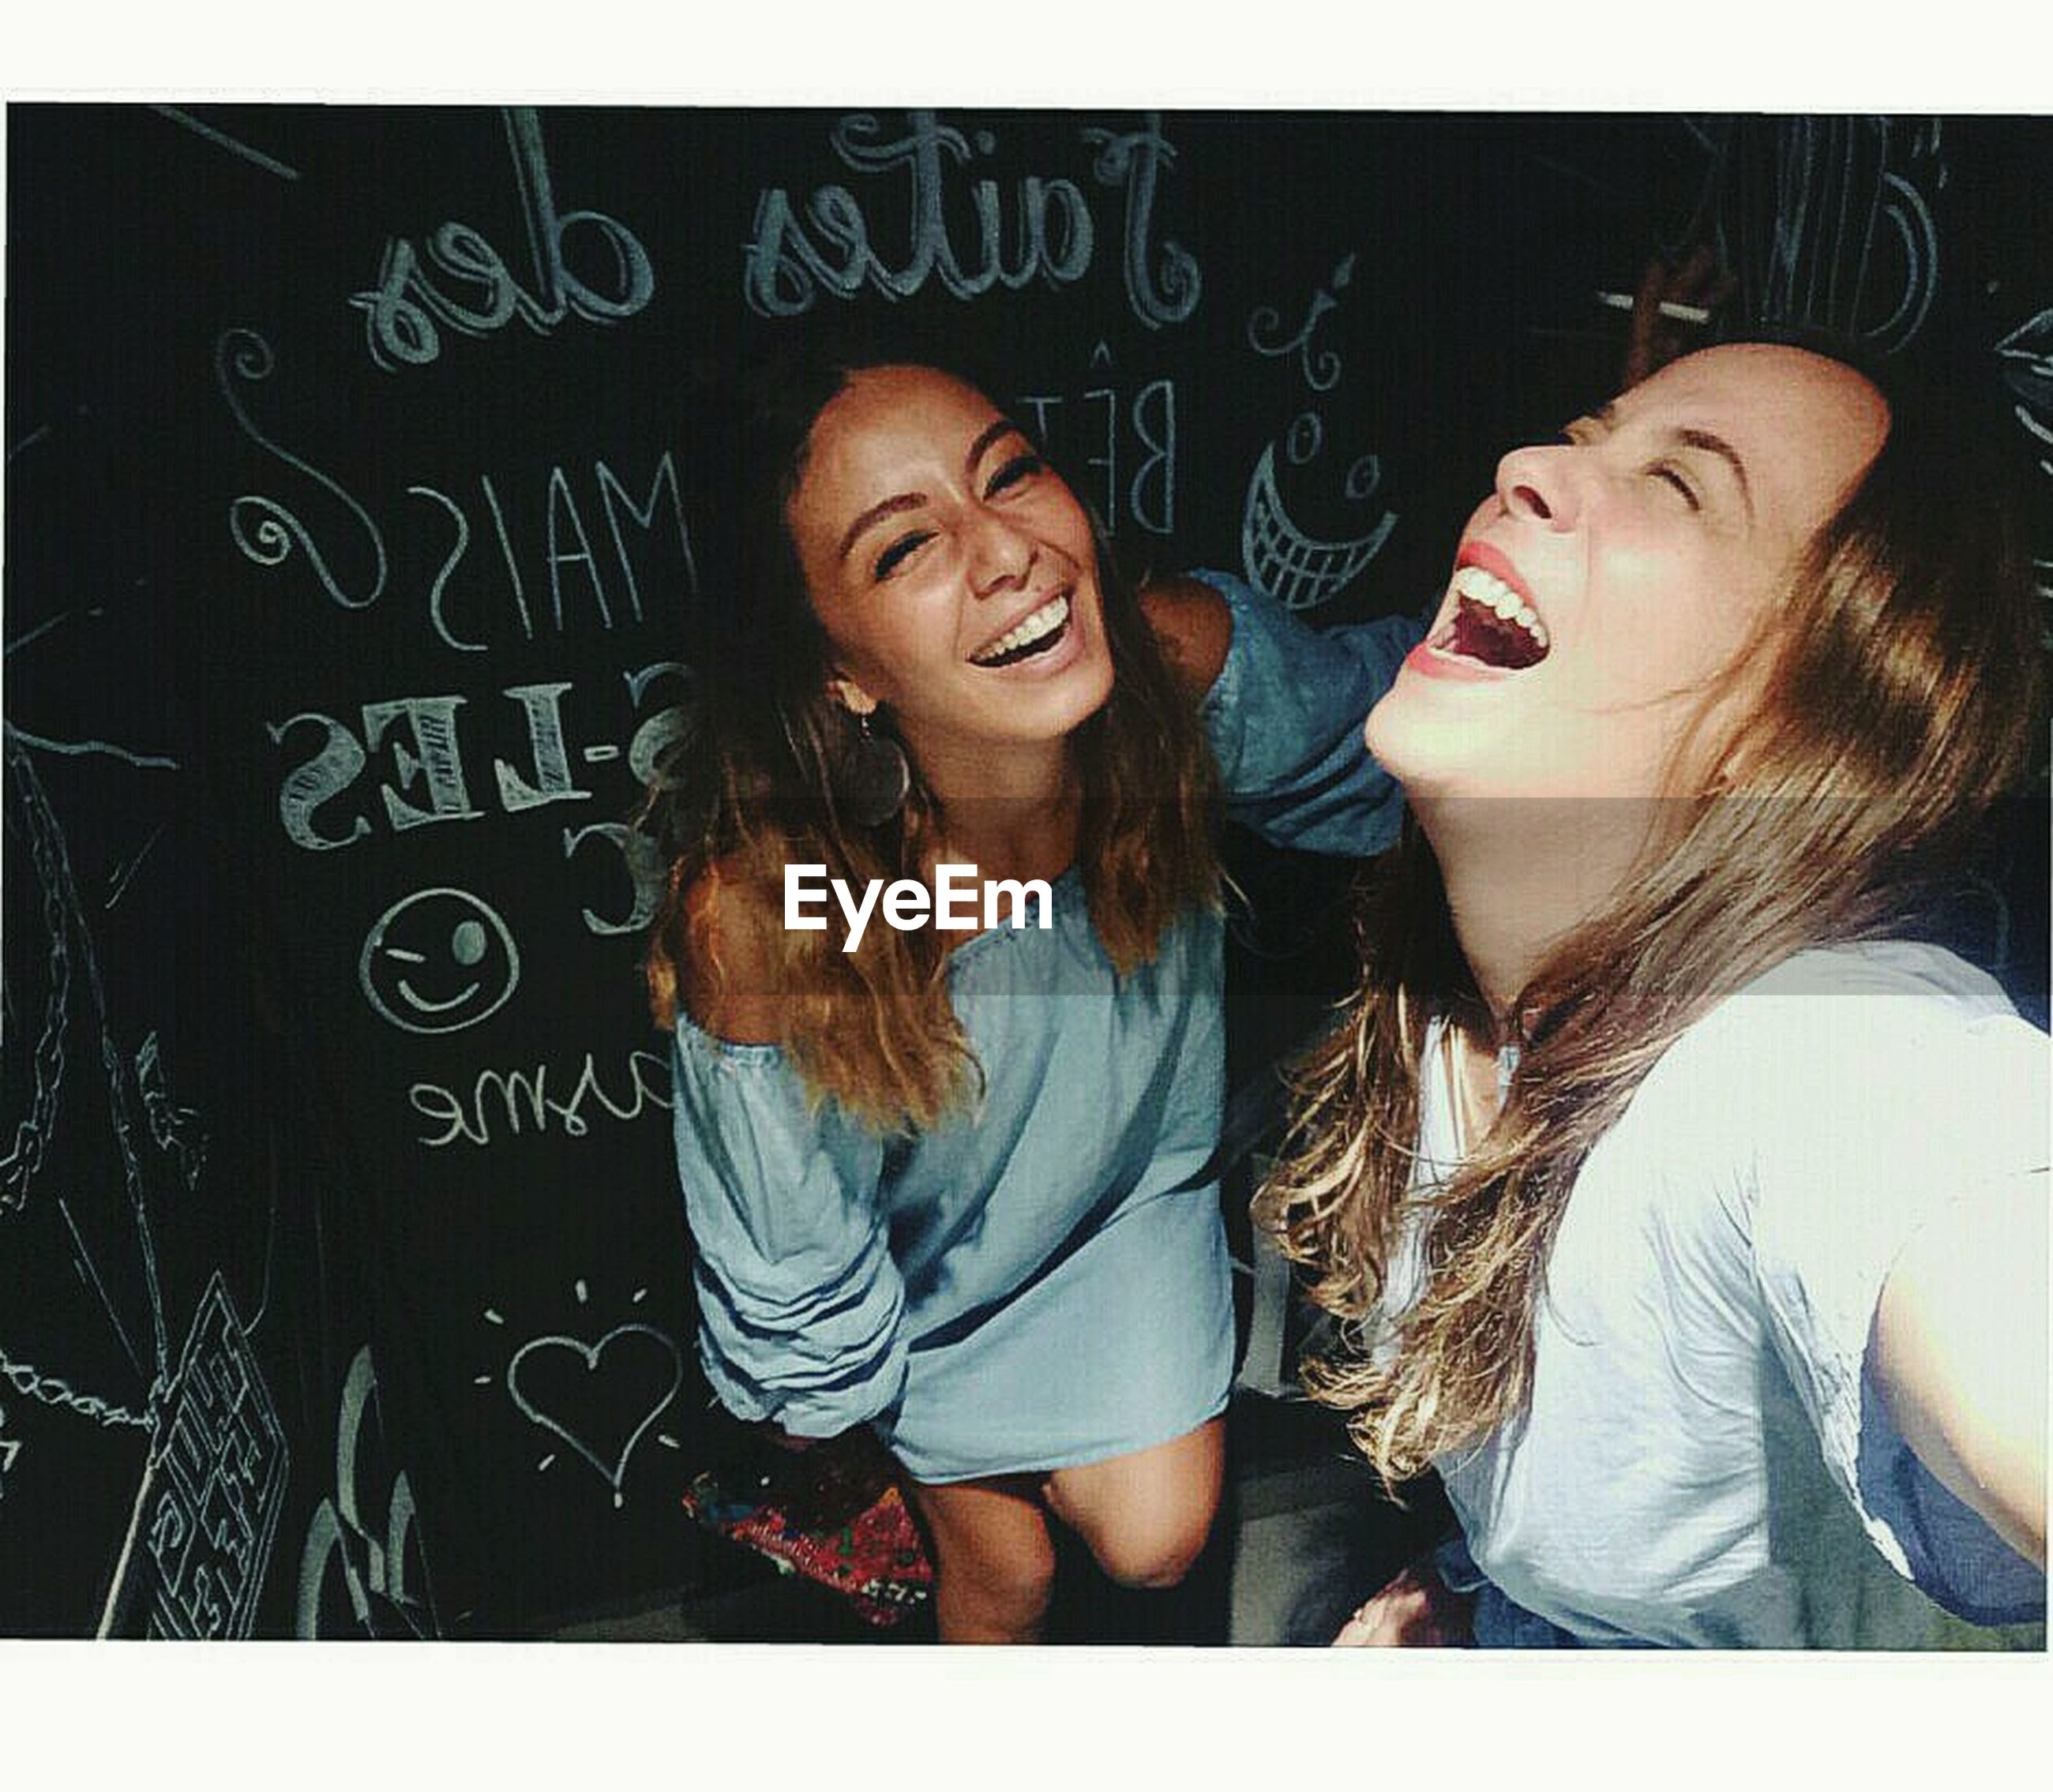 blackboard, togetherness, smiling, happiness, fun, friendship, laughing, enjoyment, two people, cheerful, bonding, young women, young adult, day, indoors, adult, people